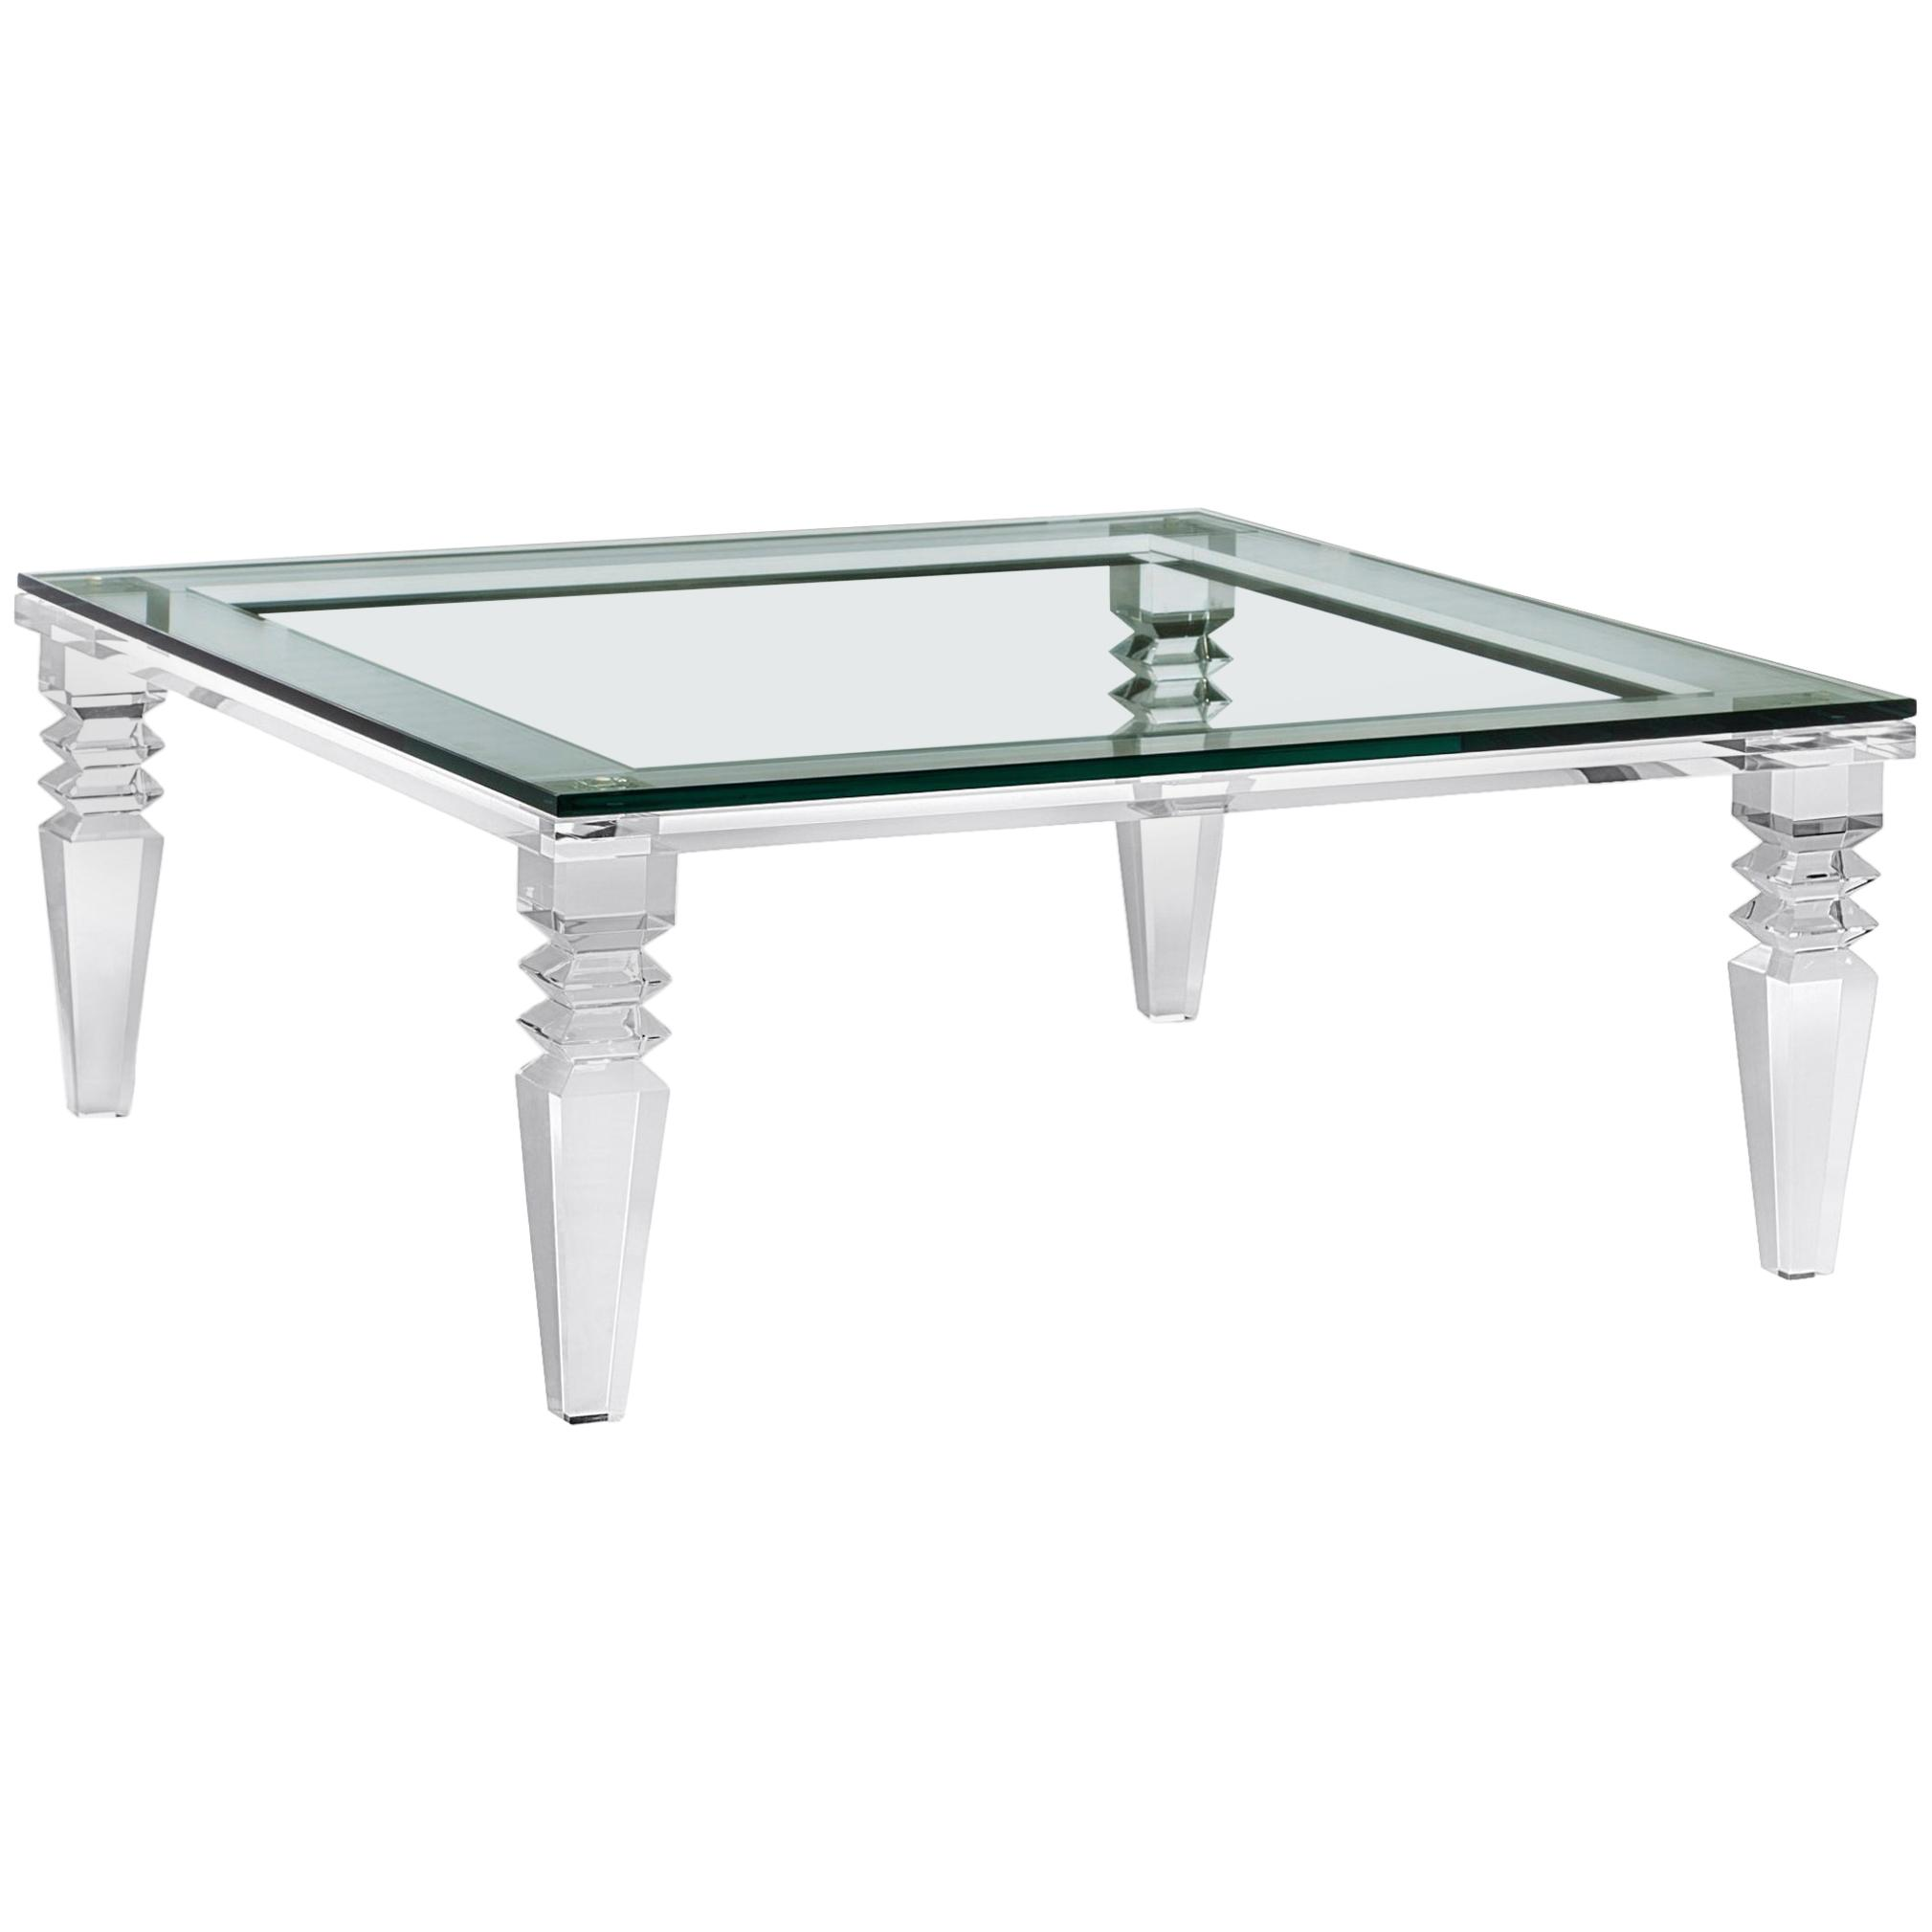 chrysler high end acrylic cocktail table with crystal glass top for master tables eureka futon when were the ans around circular patio furniture rustic side diy plexiglass legs